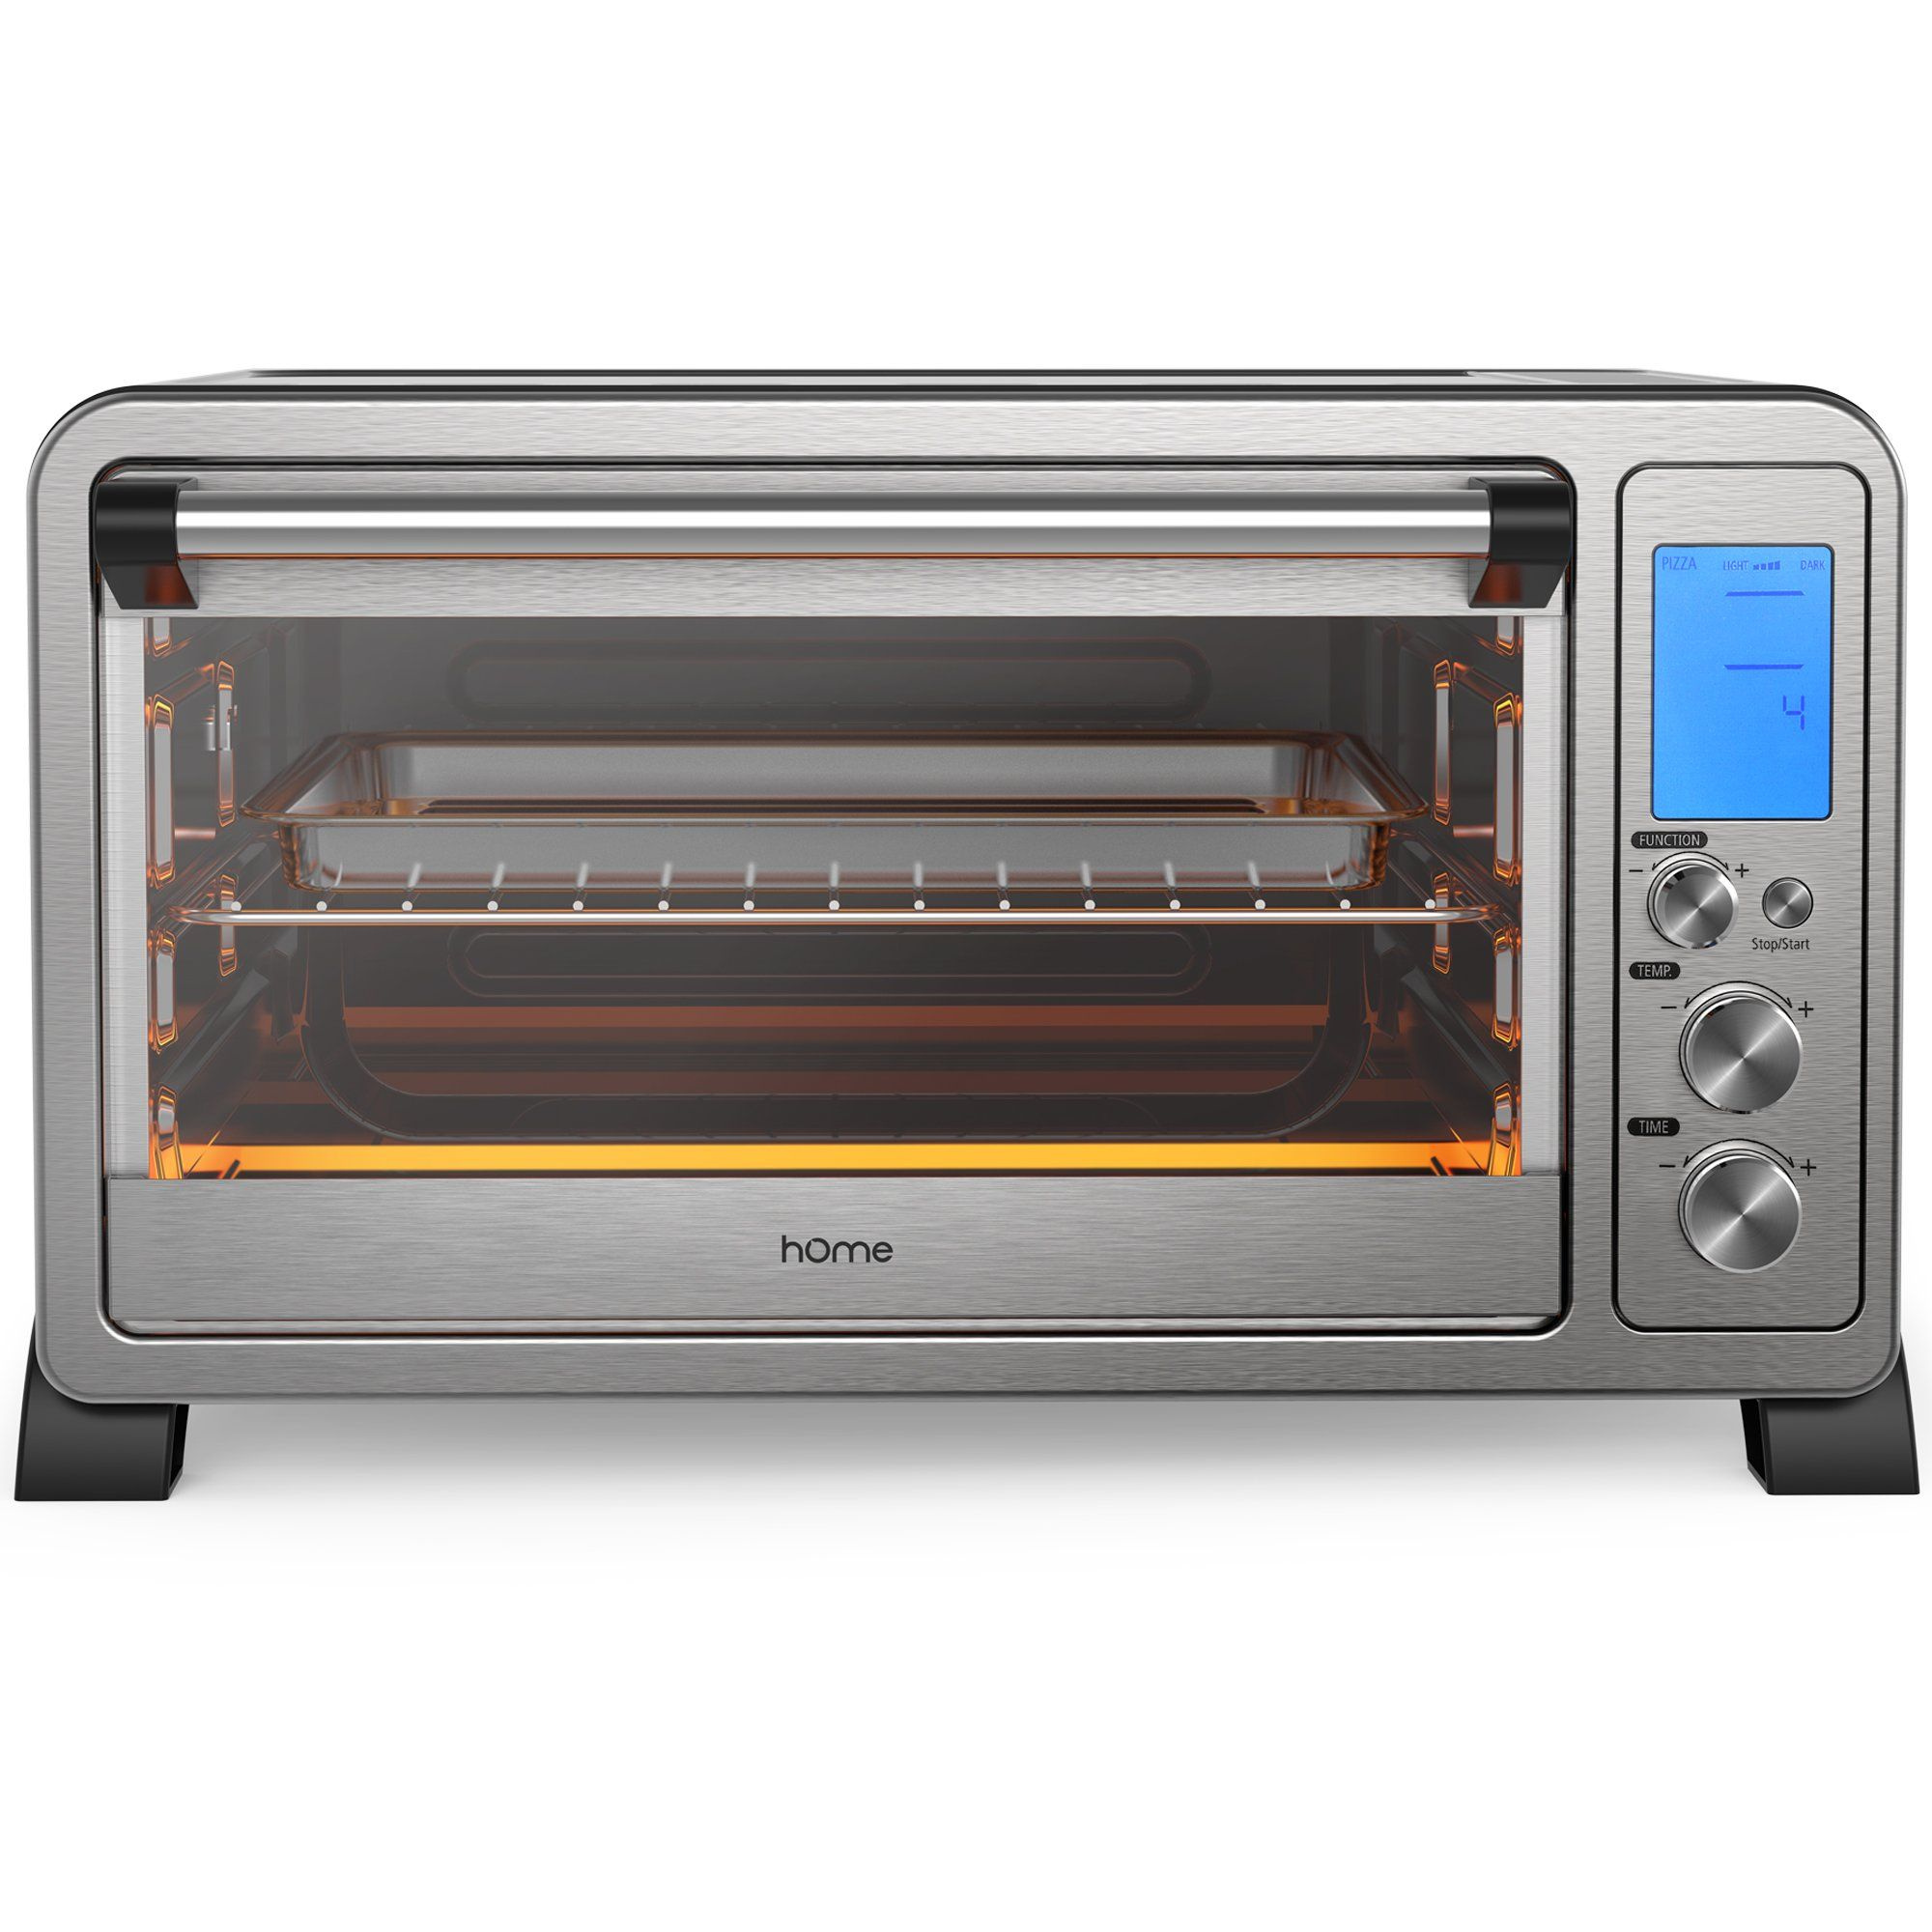 slice convectioncuisinart toasters dp black dog and amazon breville hot com stainless steel decker ovens calphalon beach toaster hamilton